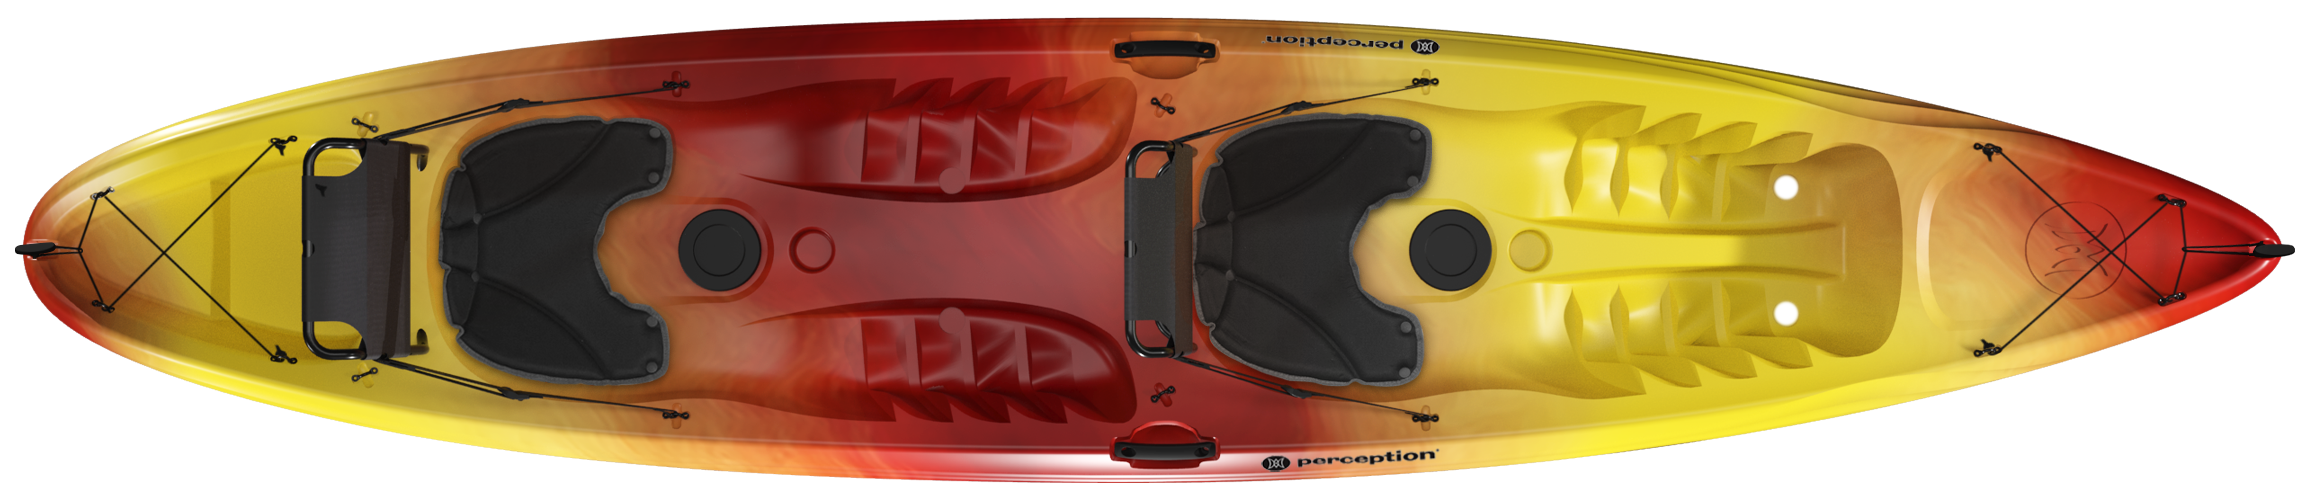 Top view of 2020 Tribe 13.5T Kayak